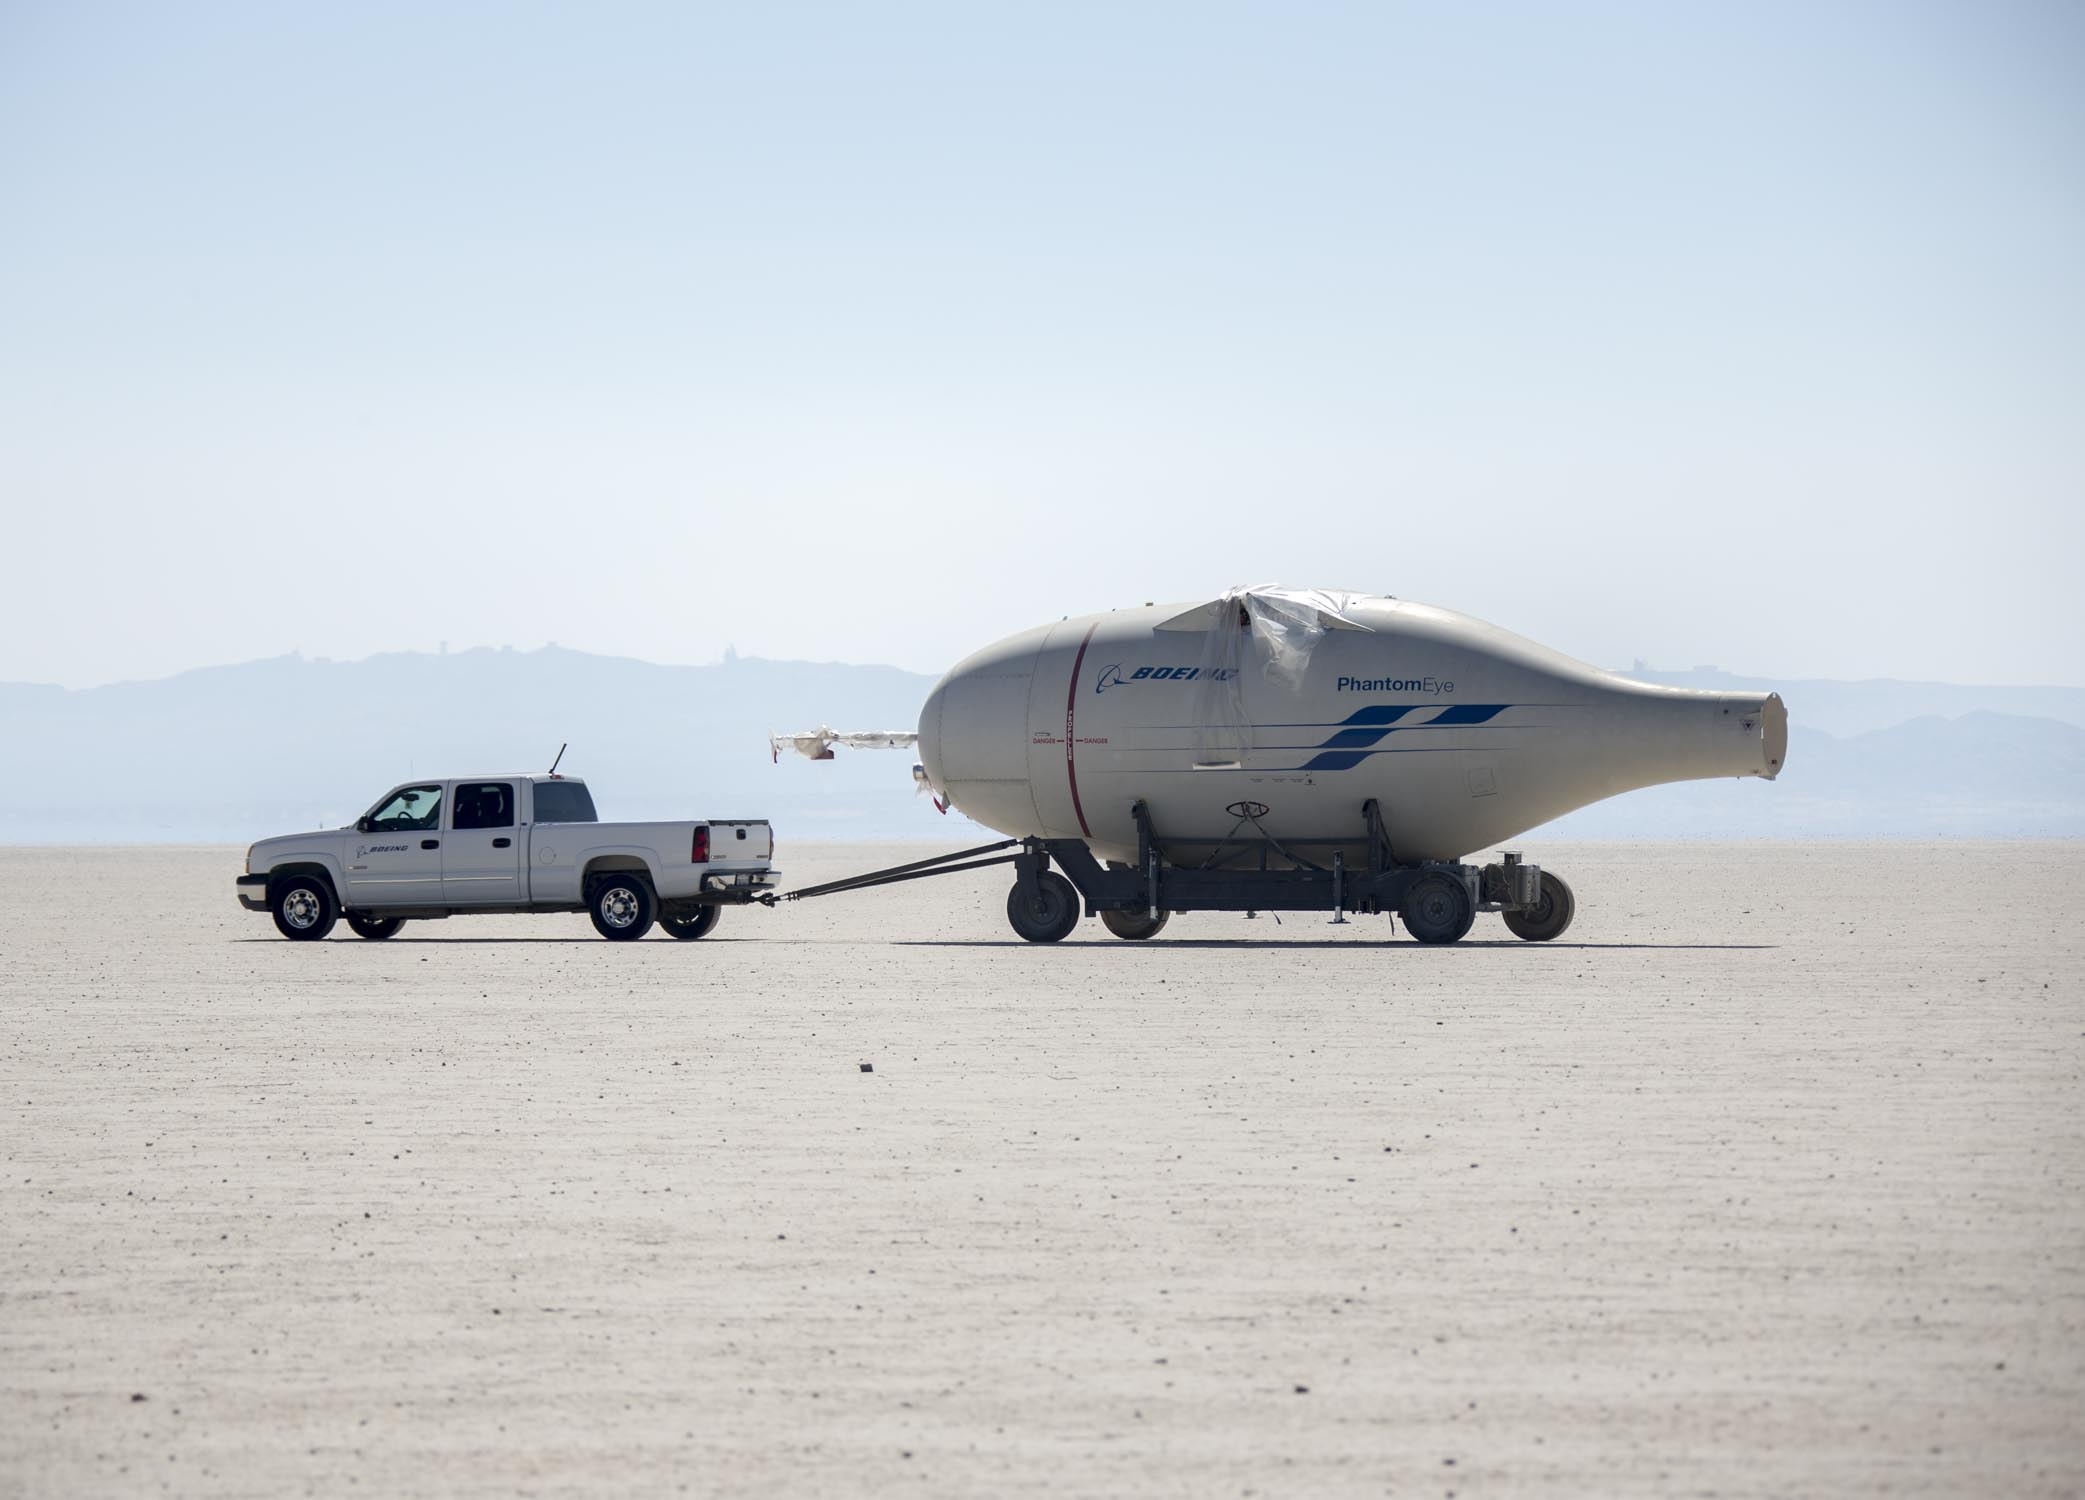 EDWARDS AIR FORCE BASE, Calif. (Aug. 17, 2016) Photos of NASA employees moving the disassembled Phantom Eye, a Boeing-developed, liquid hydrogen-powered demonstrator aircraft, during a transfer from the NASA Armstrong Flight Research Center across Rogers Dry Lake to the red-topped Hanger 4305 on North Base, where the aircraft will await reassembly and refurbishment for eventual display as part of the Air Force Flight Test Museum. Phantom Eye was designed to fly long endurance missions at high altitudes as a potential surrogate for military intelligence and communications satellites. Smoke from the Blue Cut Fire can be seen in the background of some images. (U.S. Air Force photo by Christopher Okula)